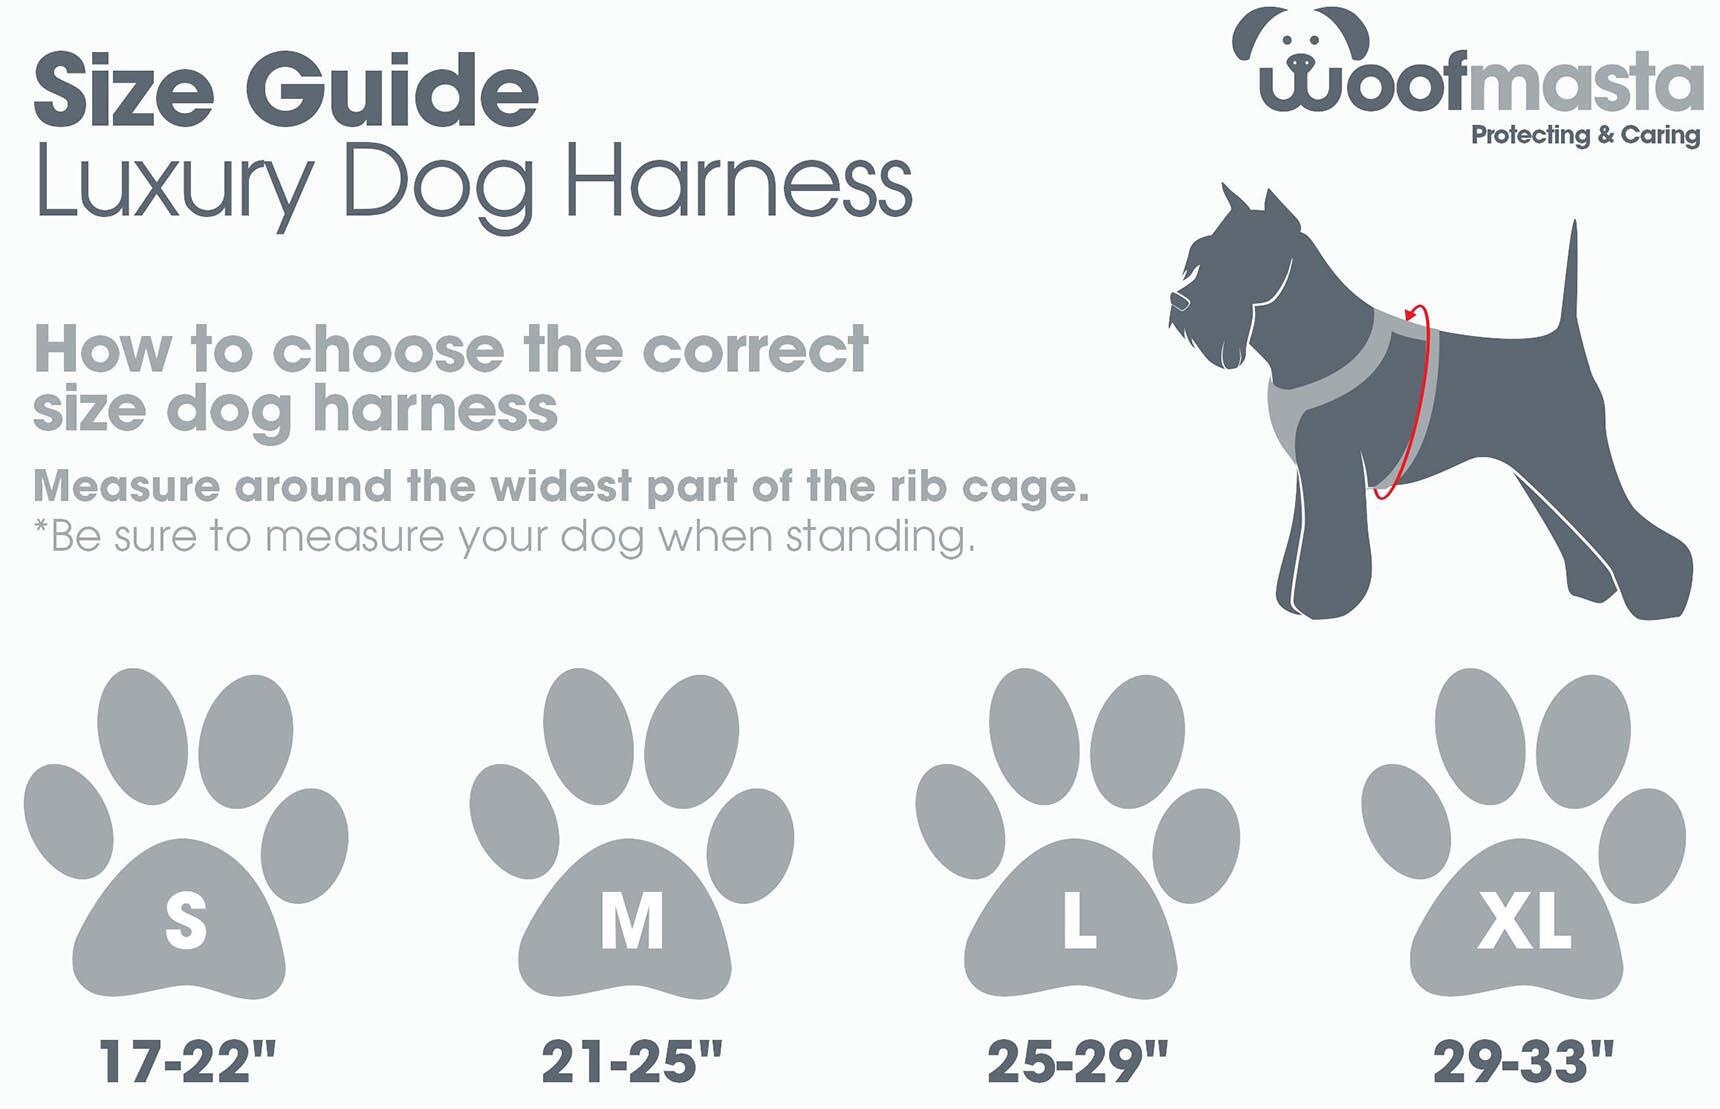 Woofmasta Dog Harness | Size Guide